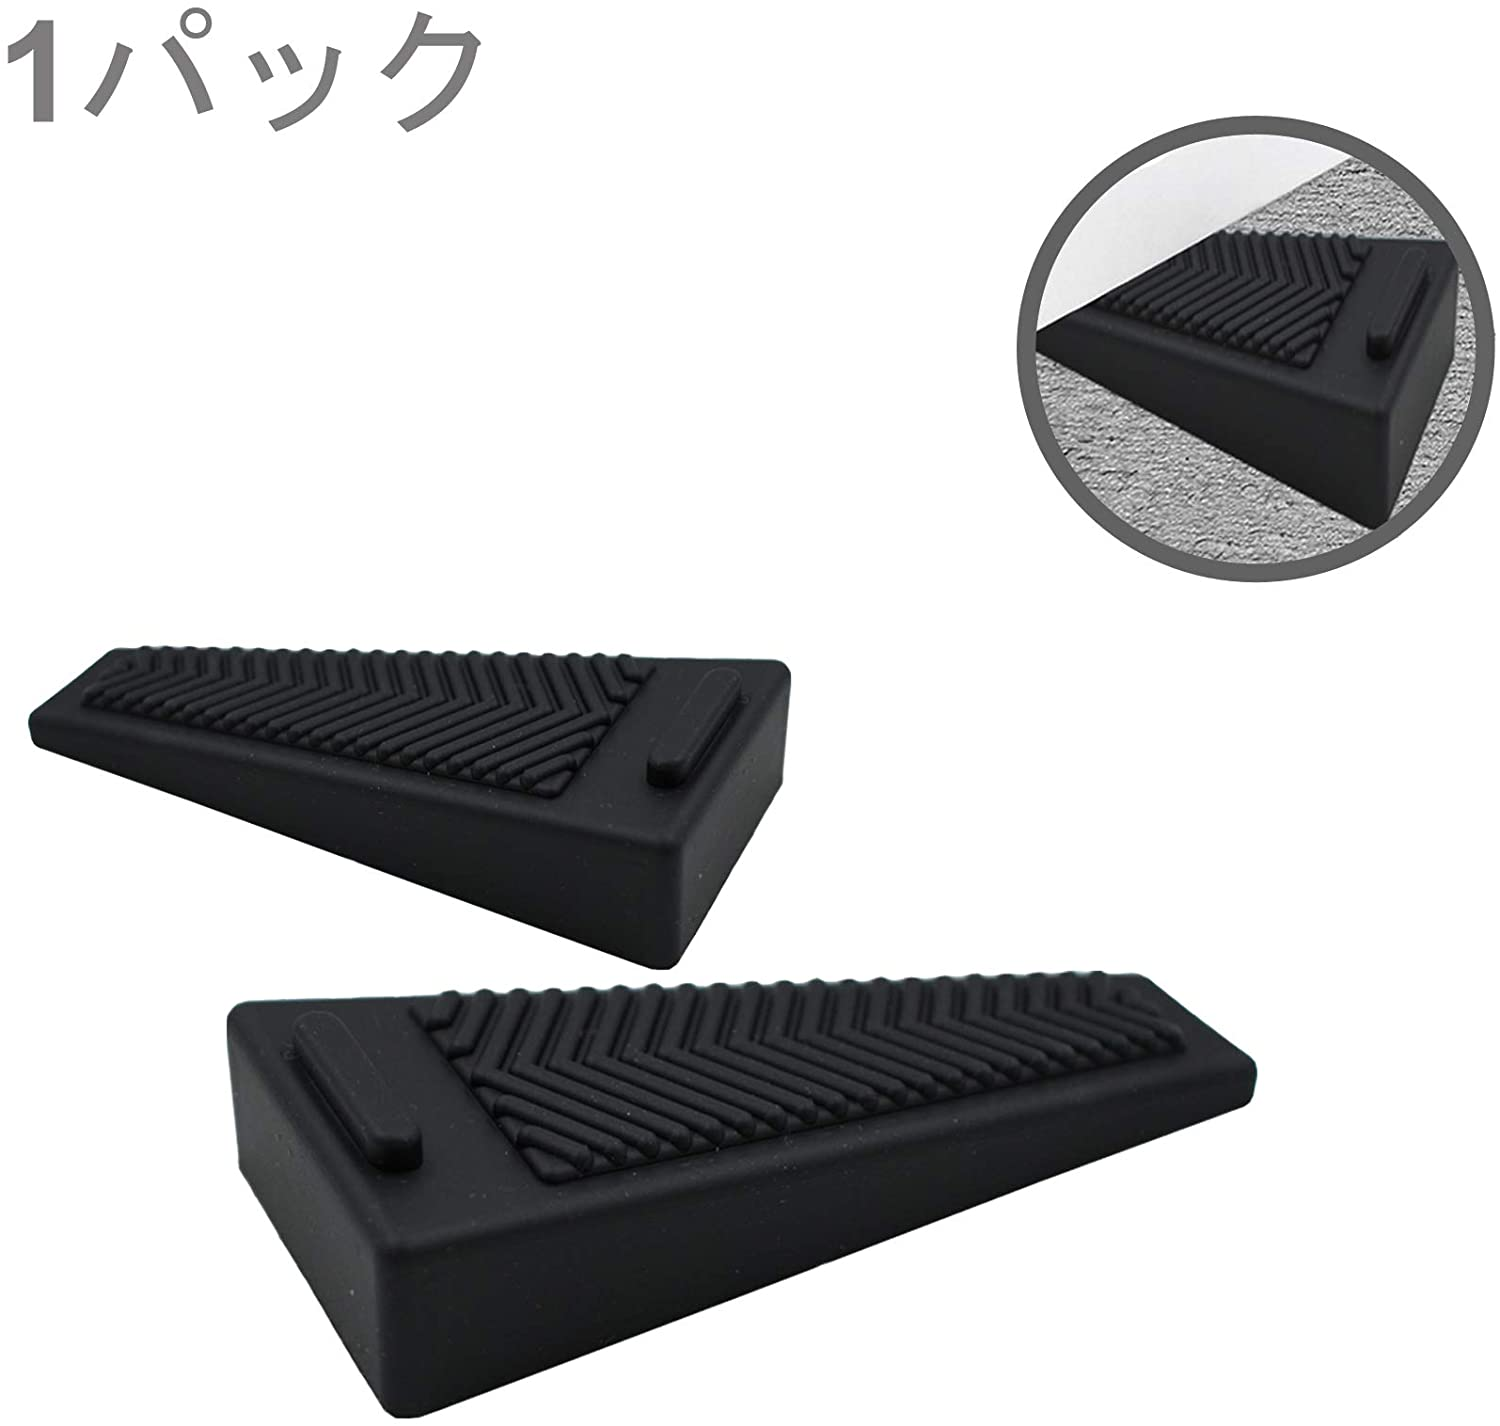 2 Pack Rubber Door Stop Wedge Flexible Door Stopper Tip Rubber Home Door Stop Bumper Heavy Duty Design Doorstops Work on Carpet/Floors